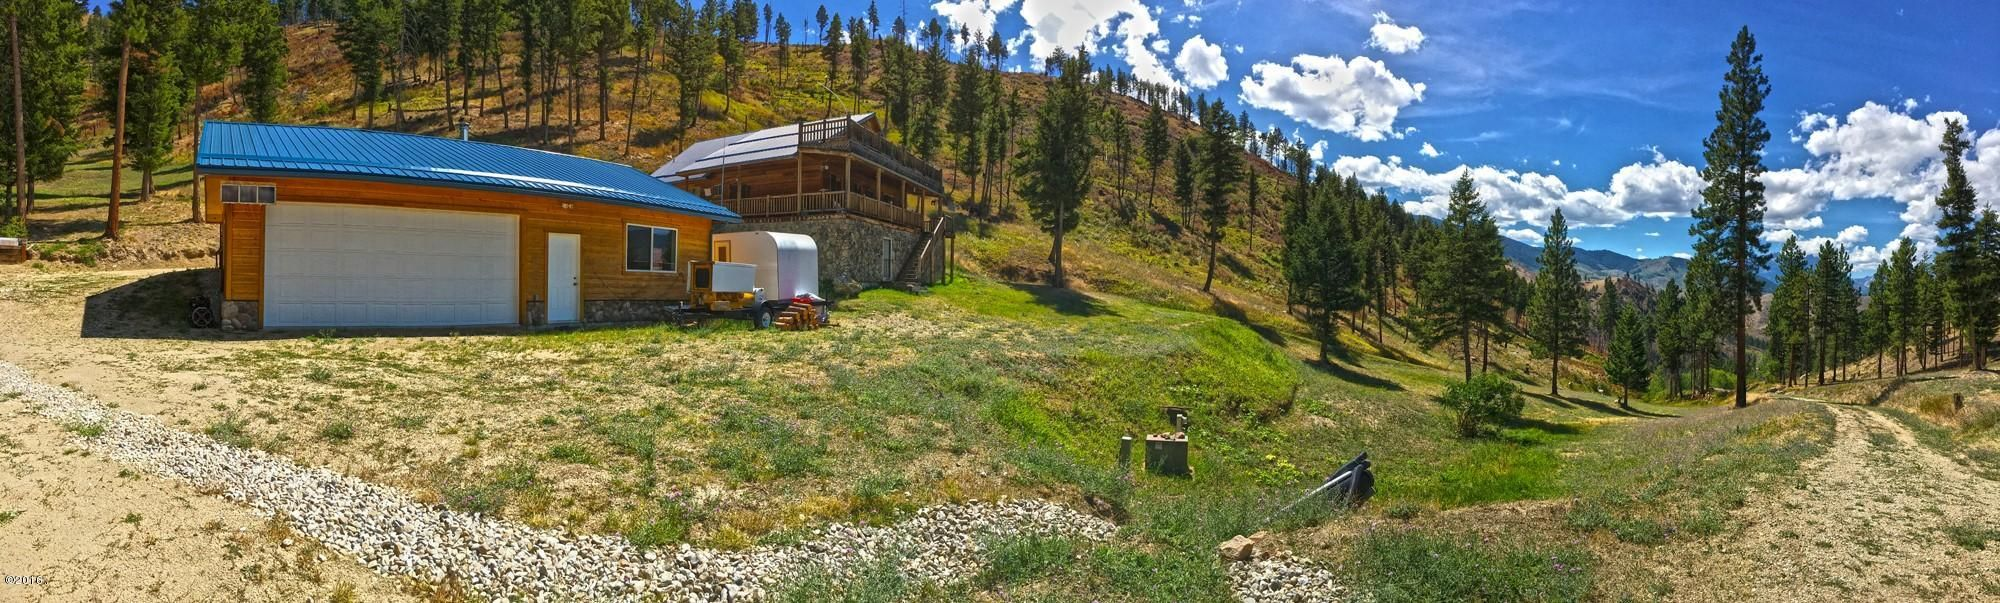 Additional photo for property listing at 116 Whiskey Gulch Road  Conner, Montana 59827 United States